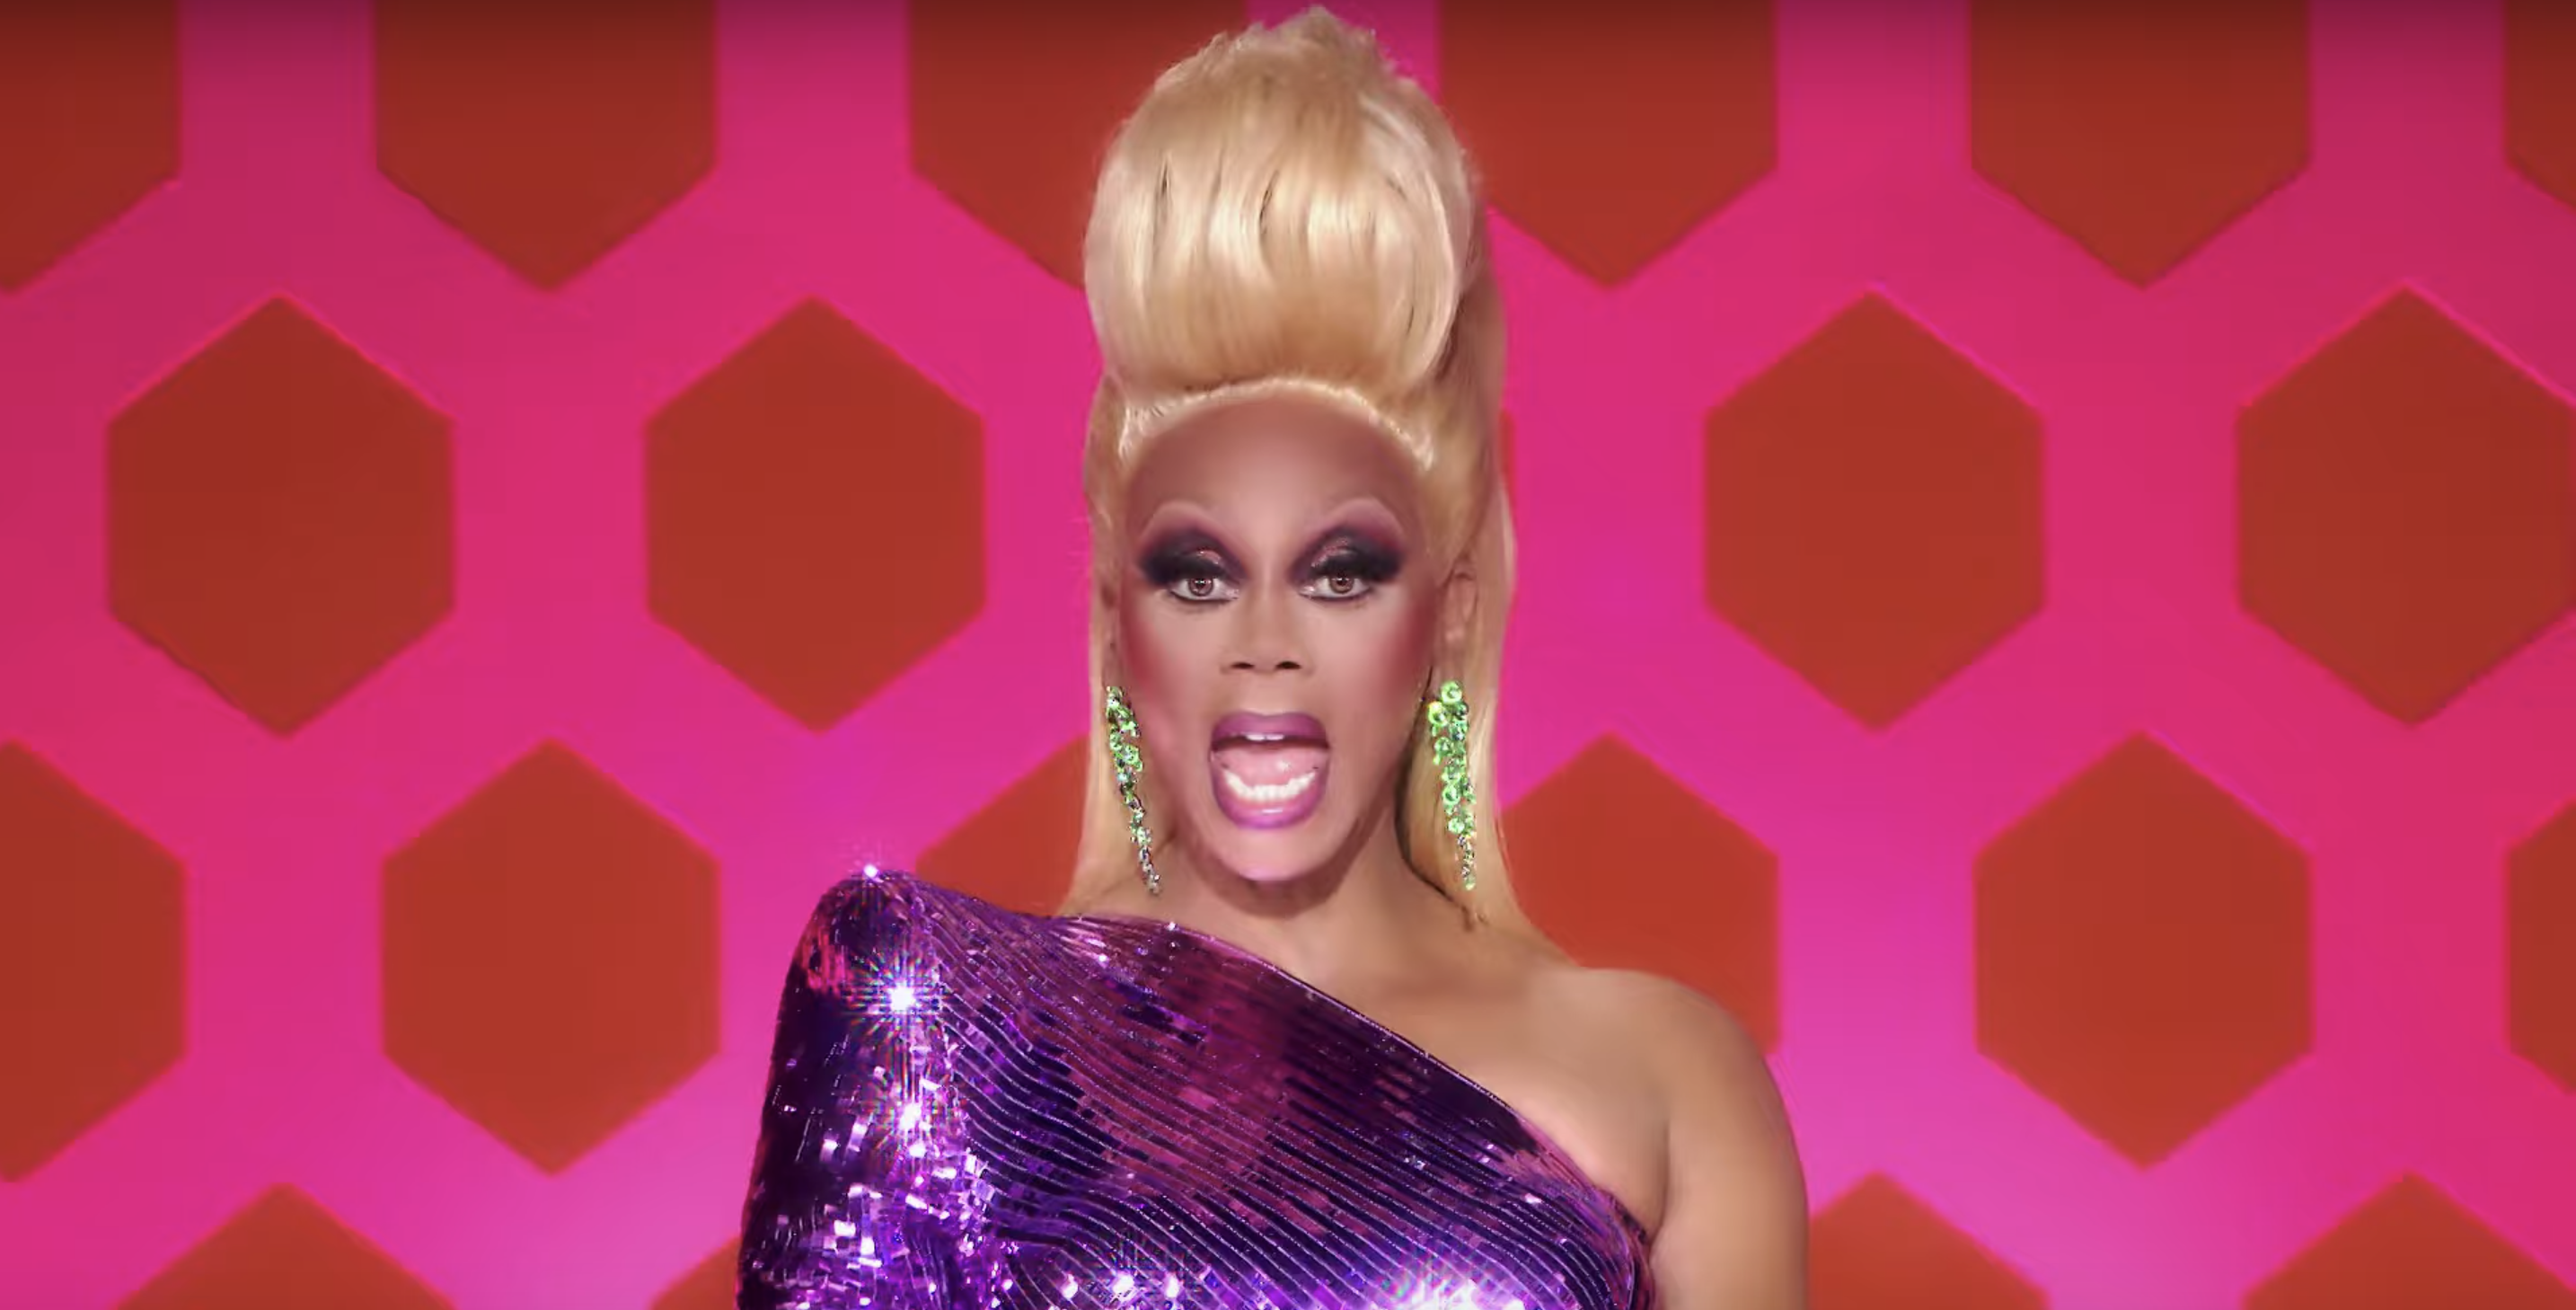 RuPaul's Drag Race UK unveils first-look photo as more new US seasons are confirmed